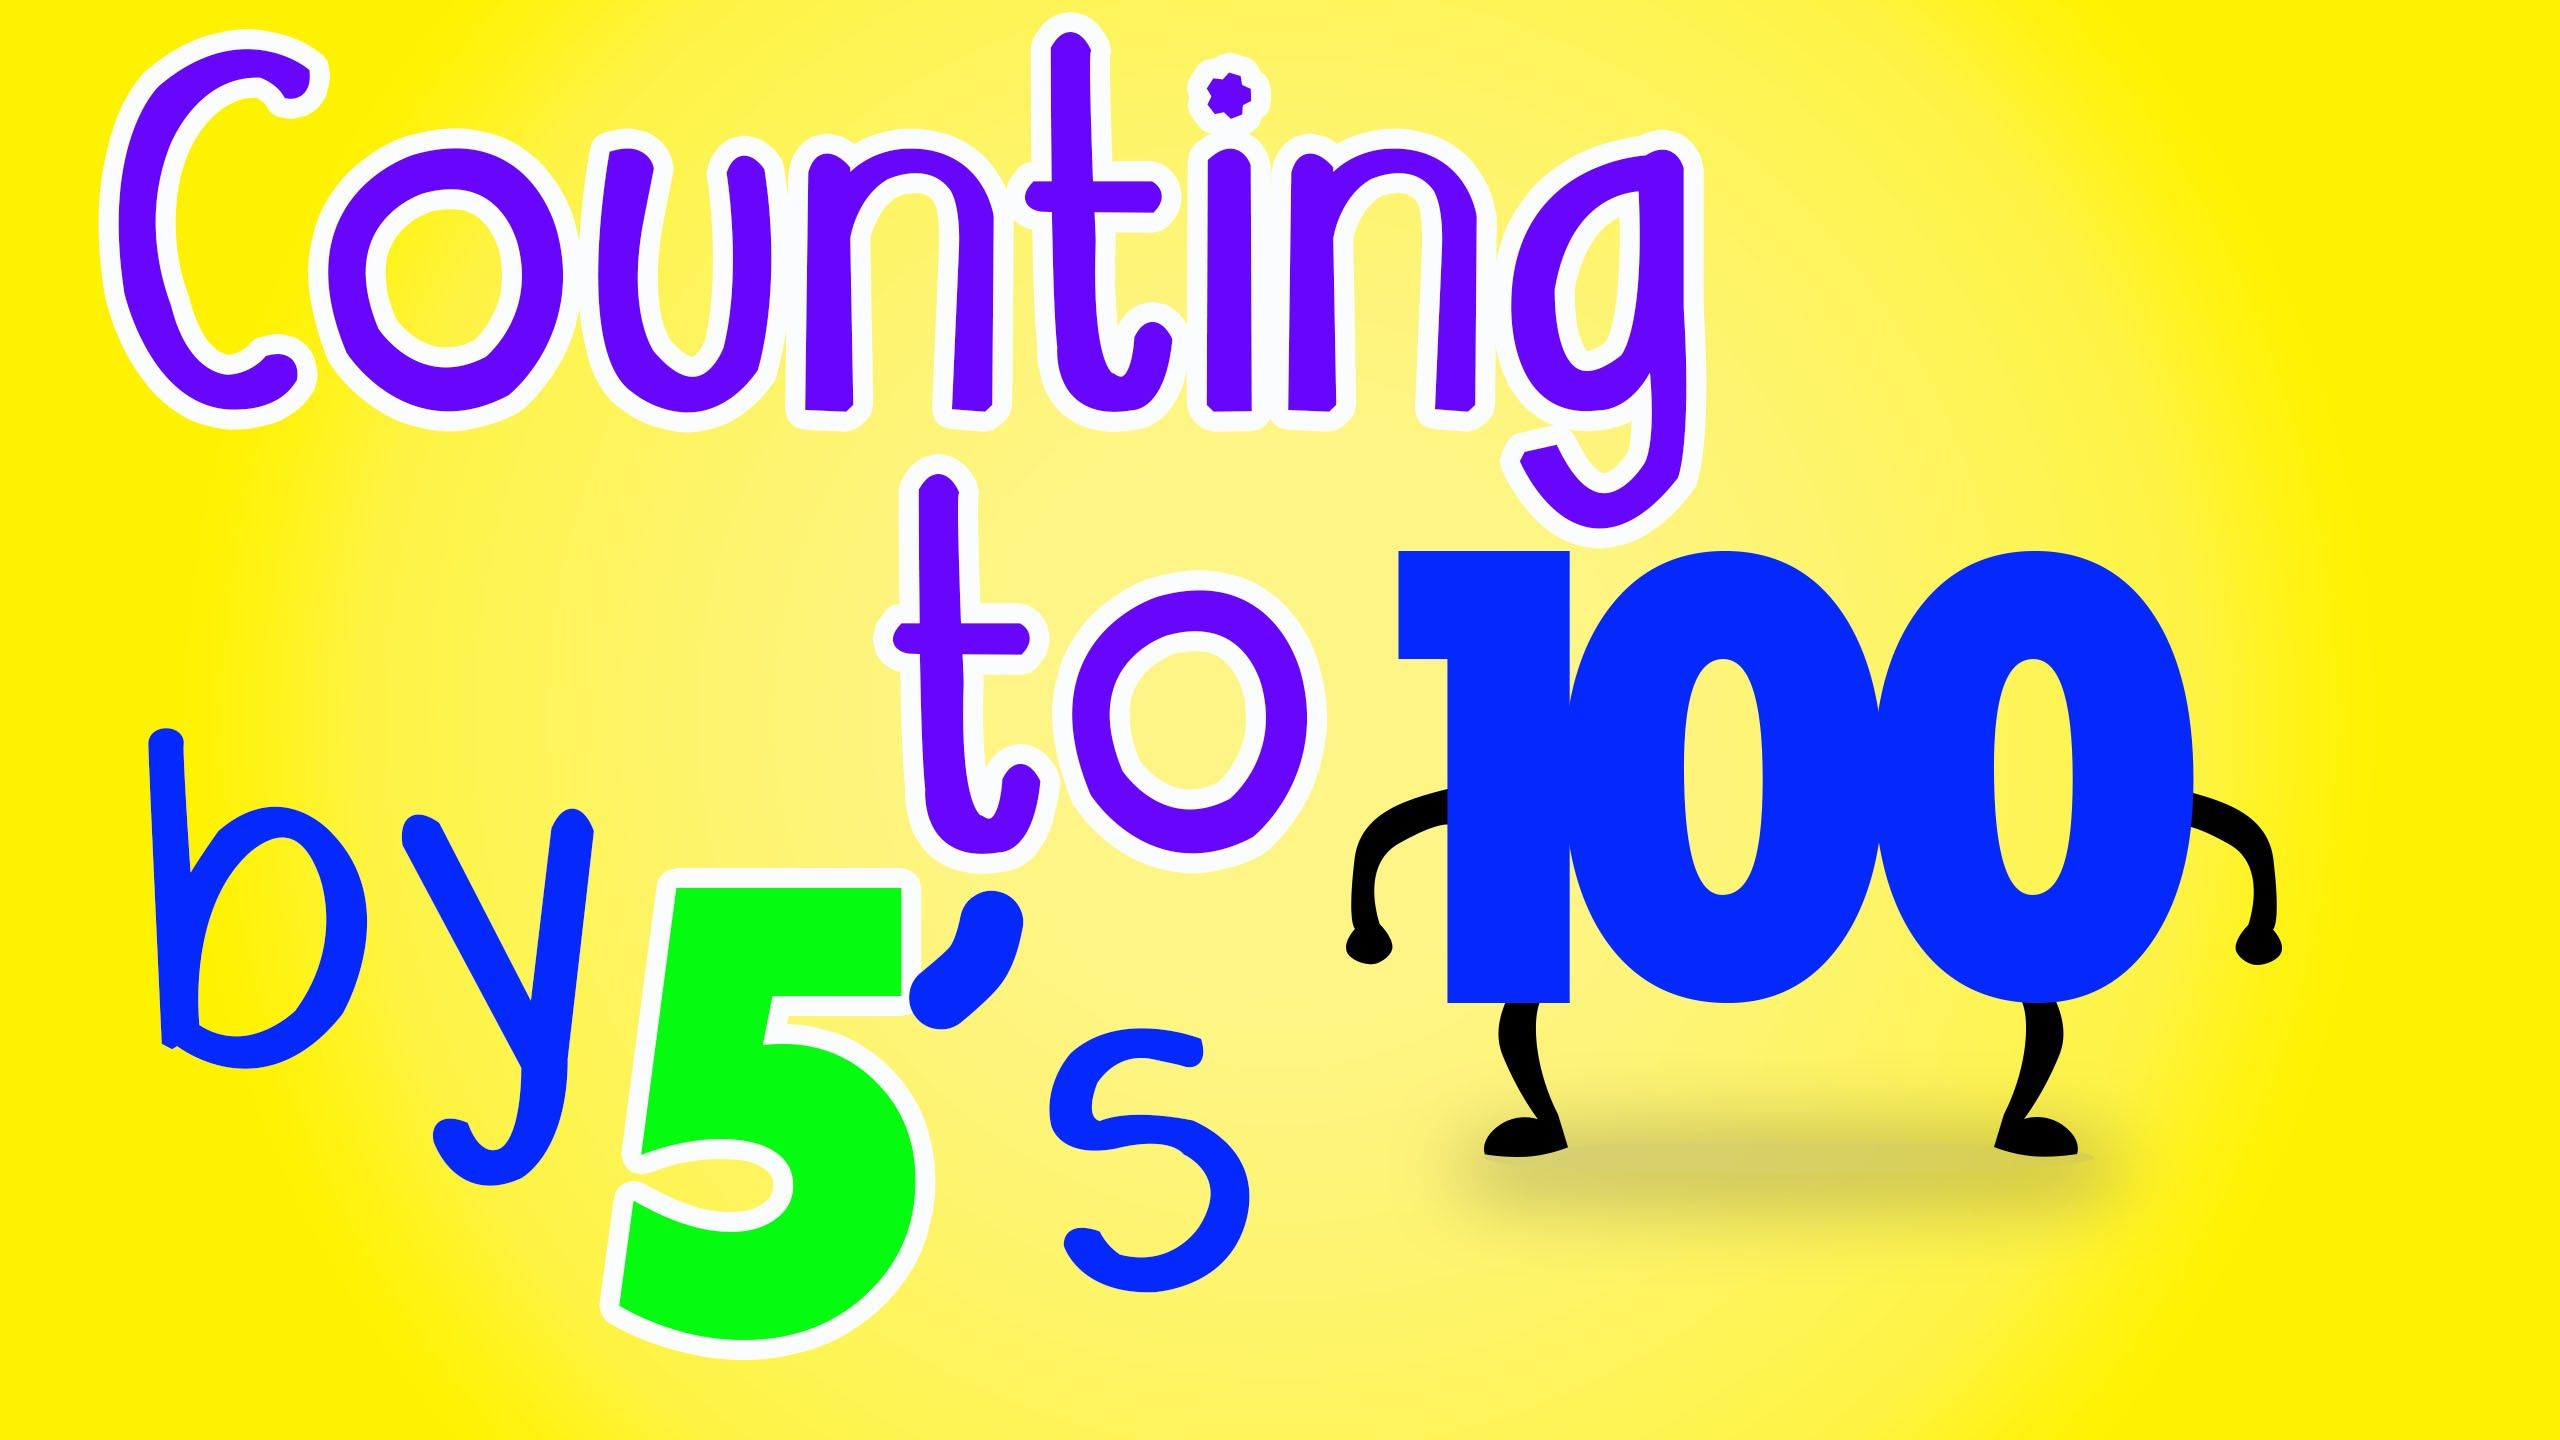 Counting By 5 S Song To 100 Counting To 100 By 5s